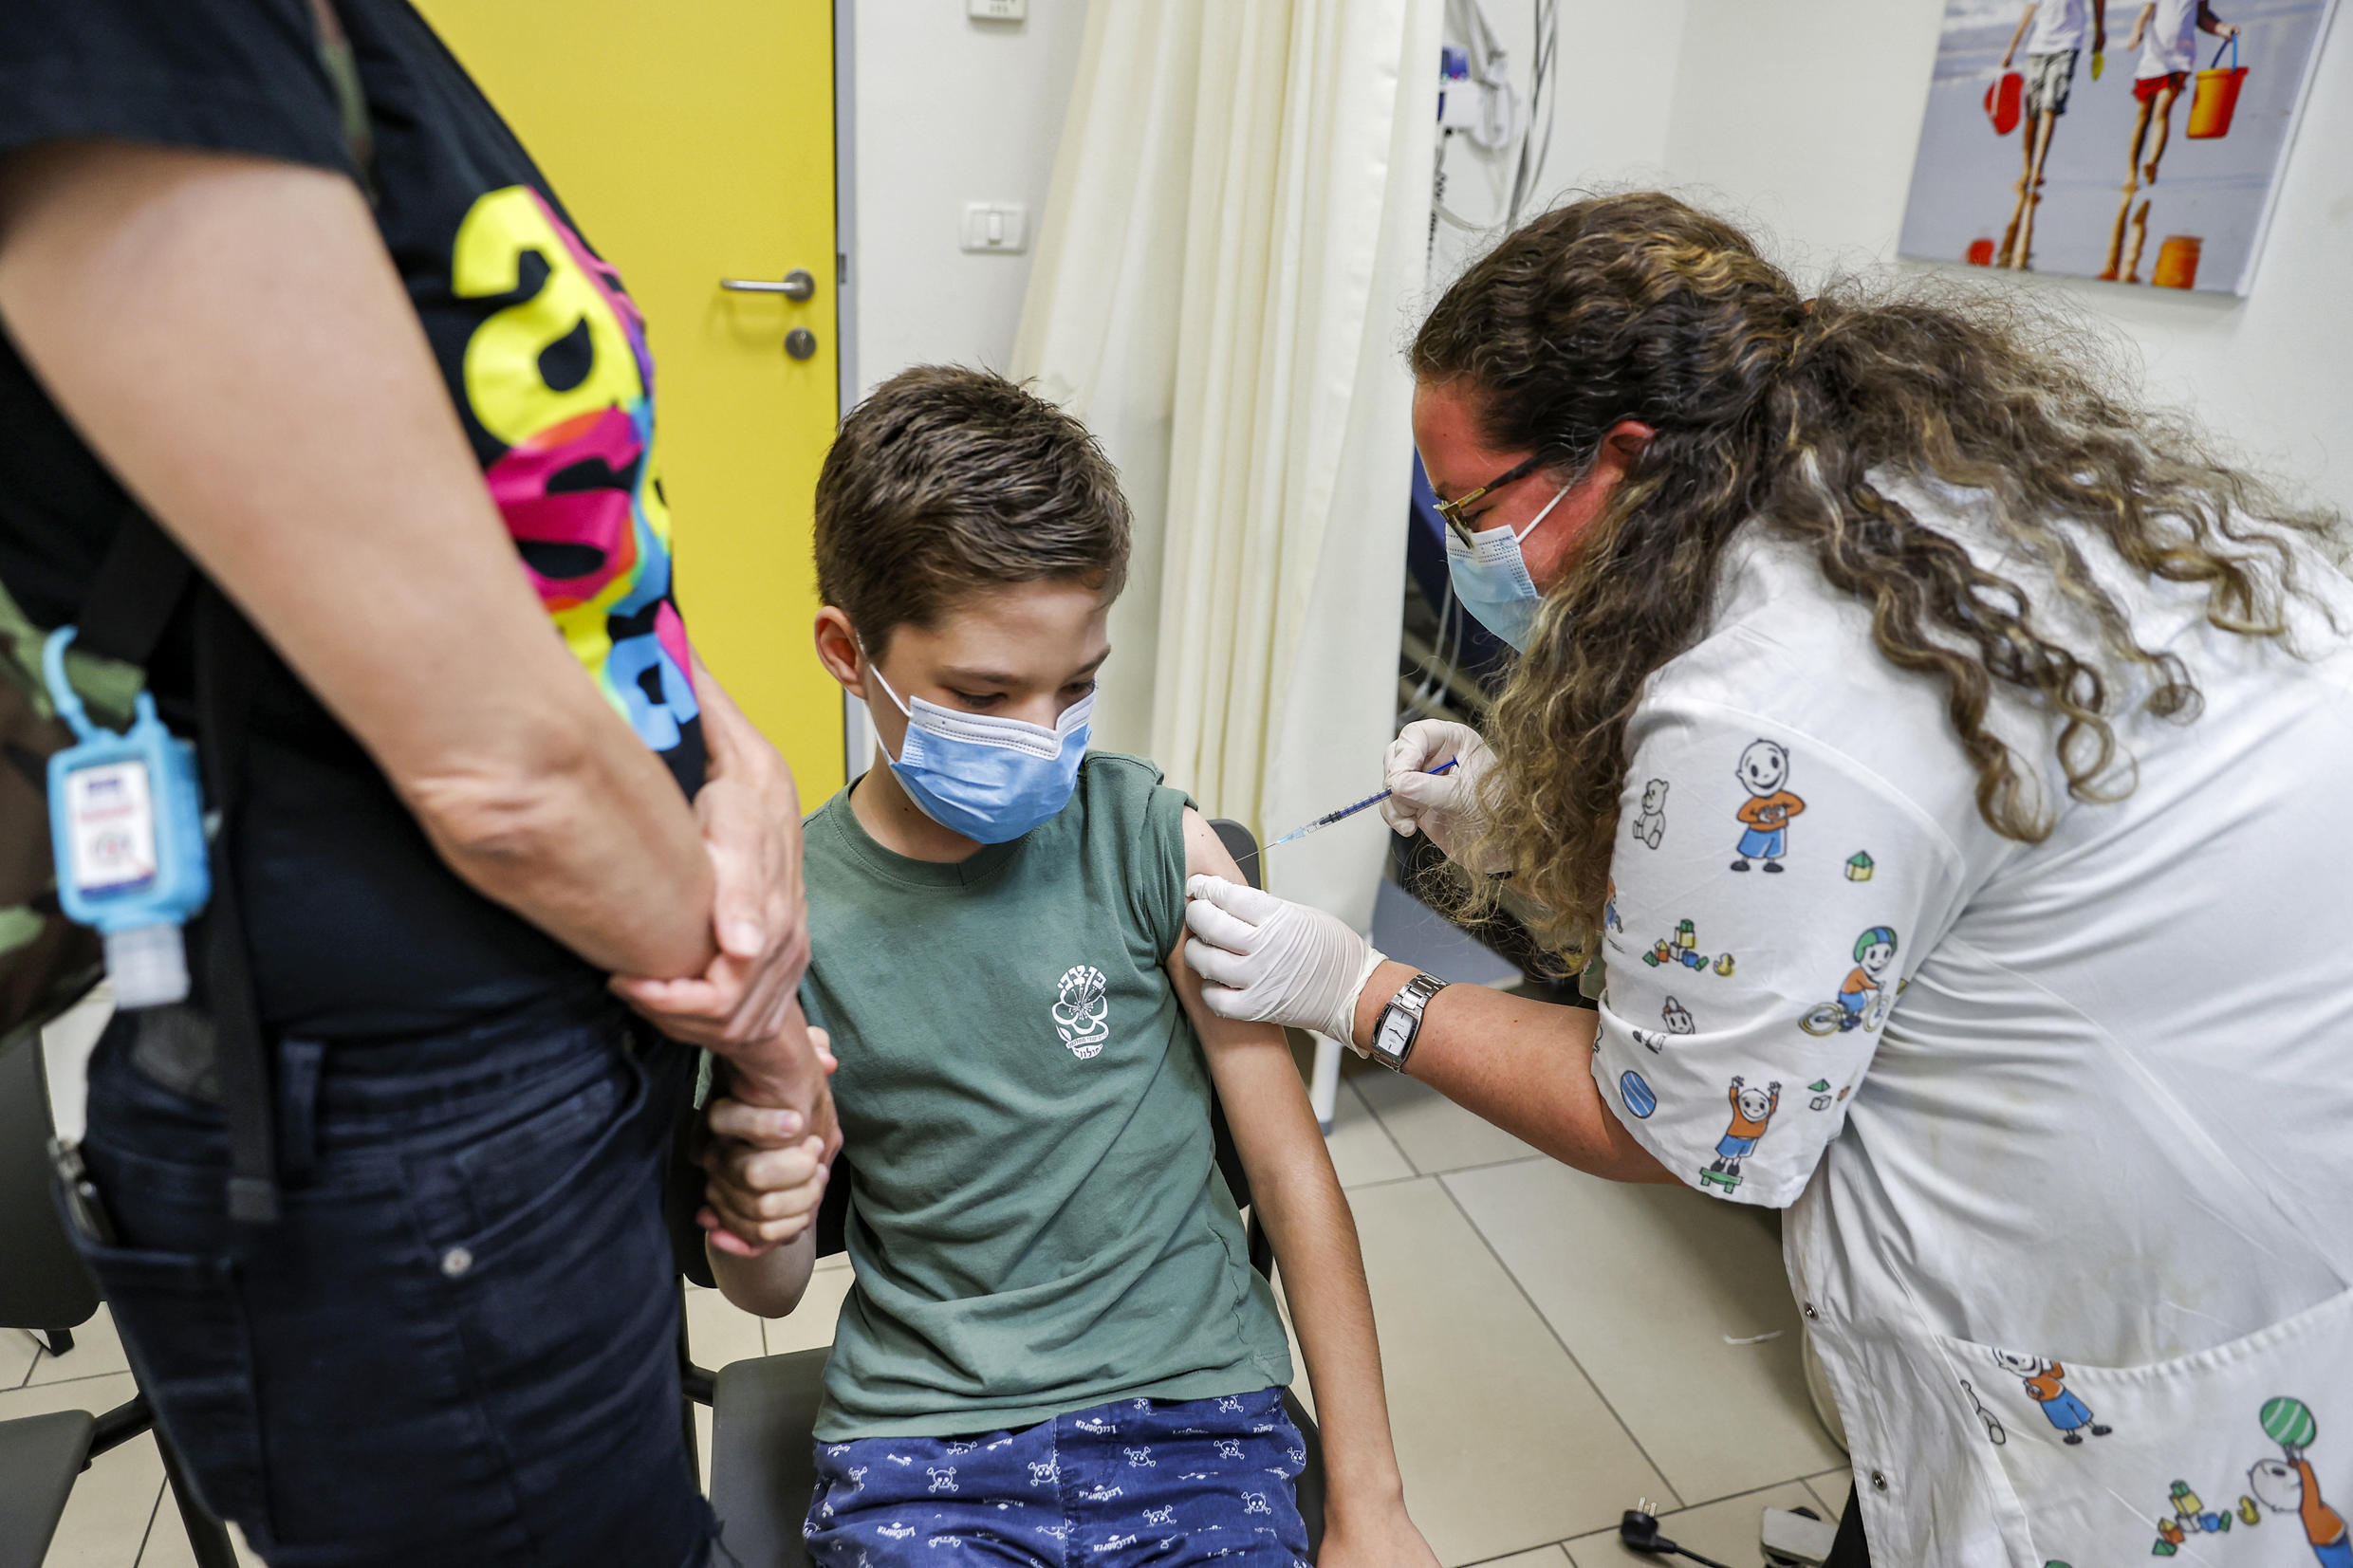 A boy receives a dose of the Pfizer/BioNTech Covid-19 vaccine in the Israeli city of Holon near Tel Aviv